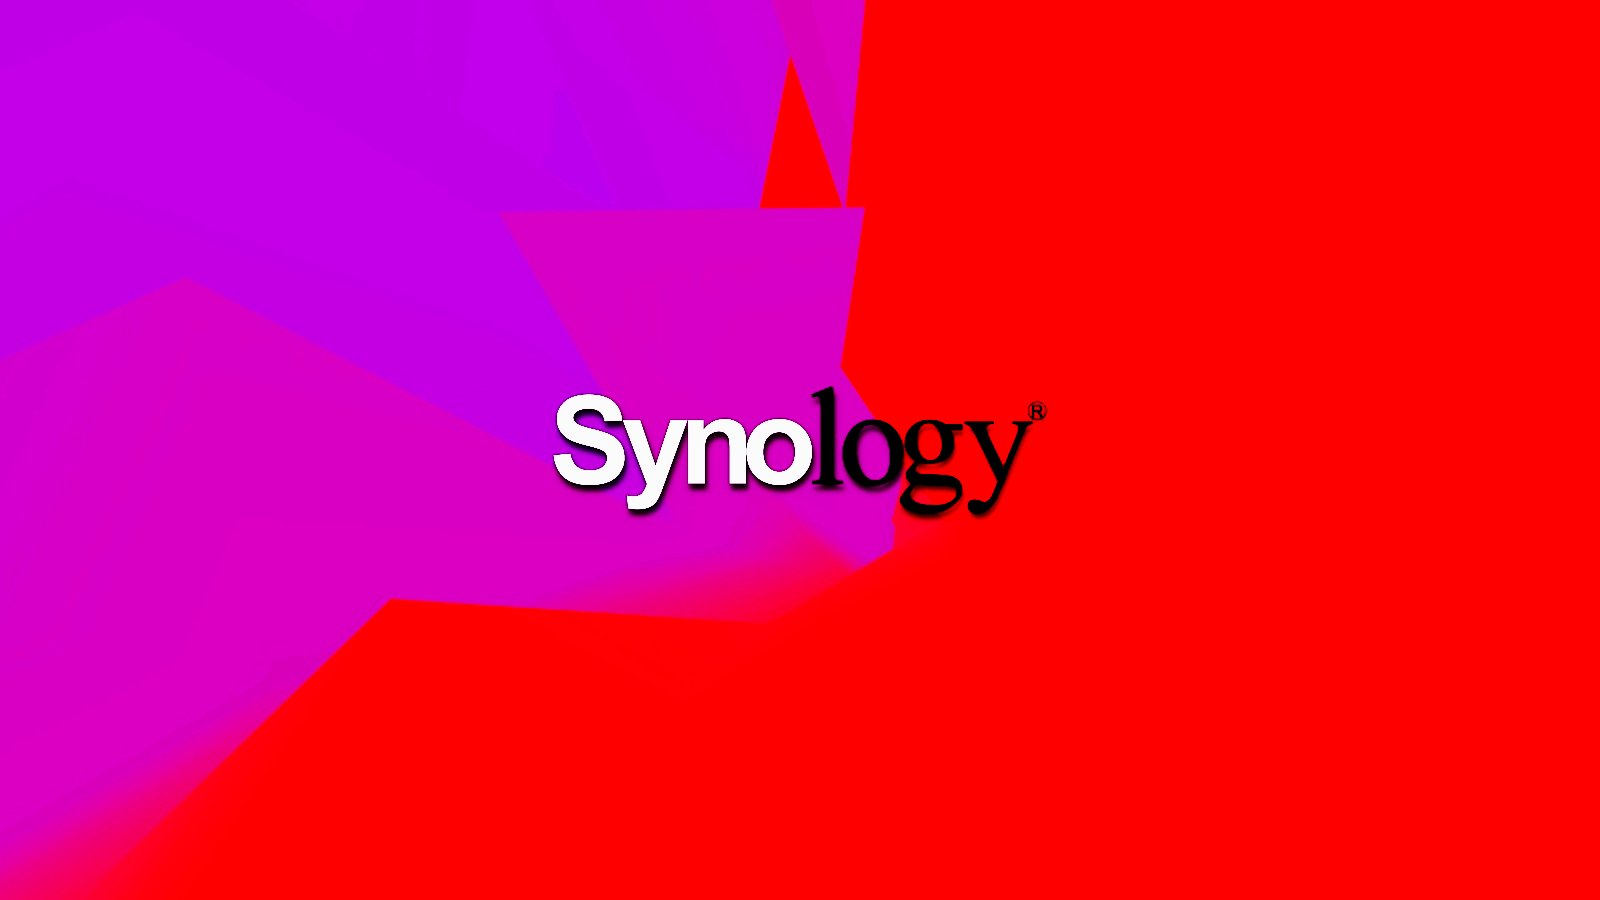 Synology warns of malware infecting NAS devices with ransomware